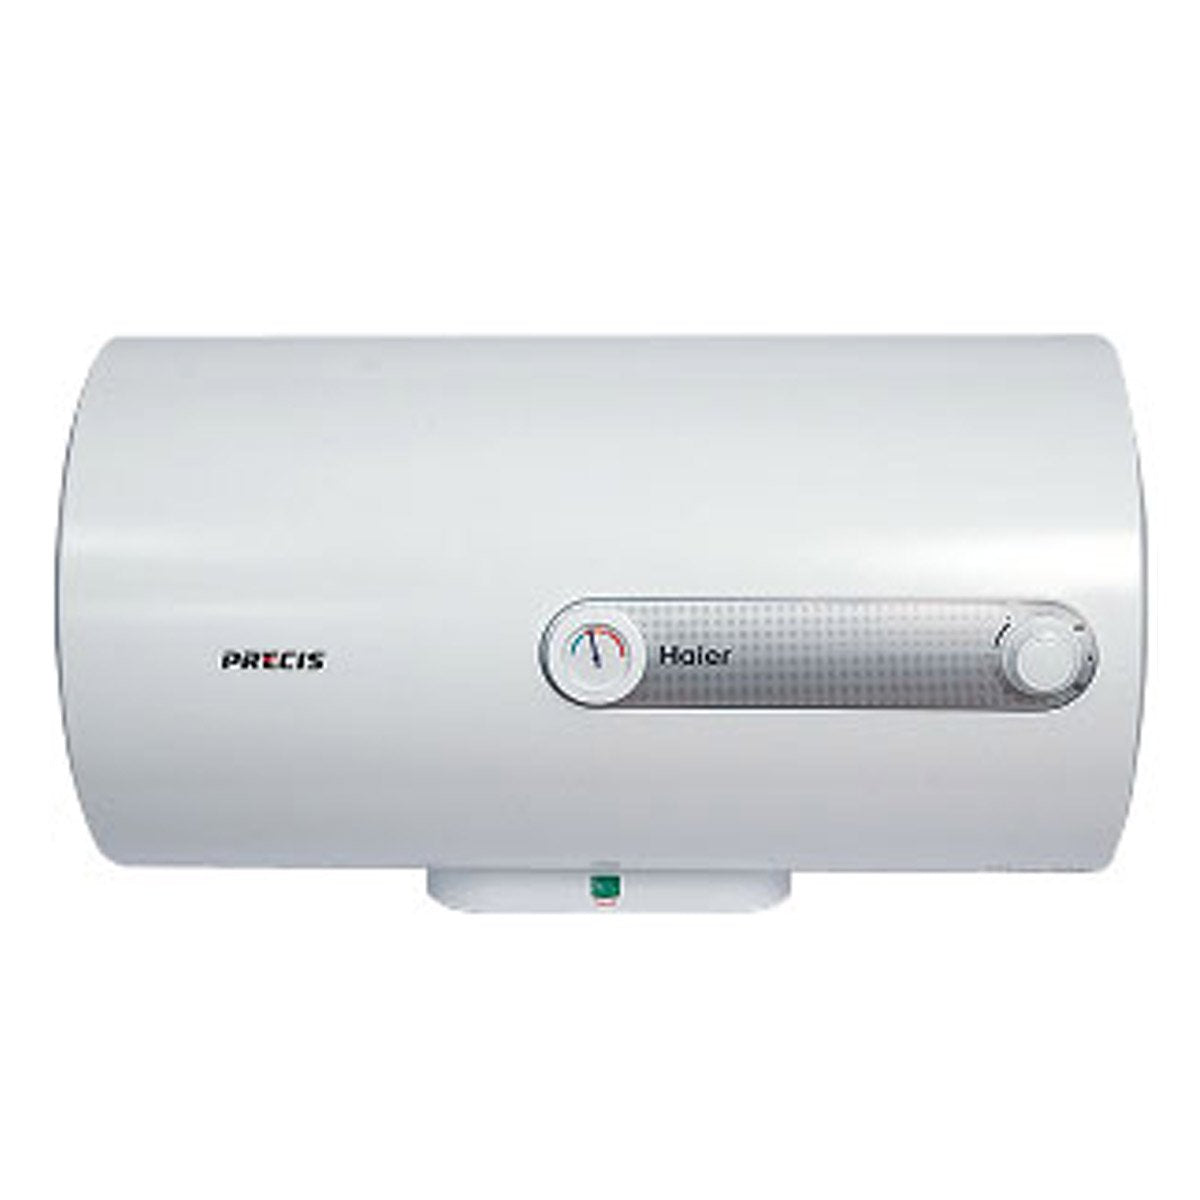 Haier ES 15H-E1 Storage Water Heater